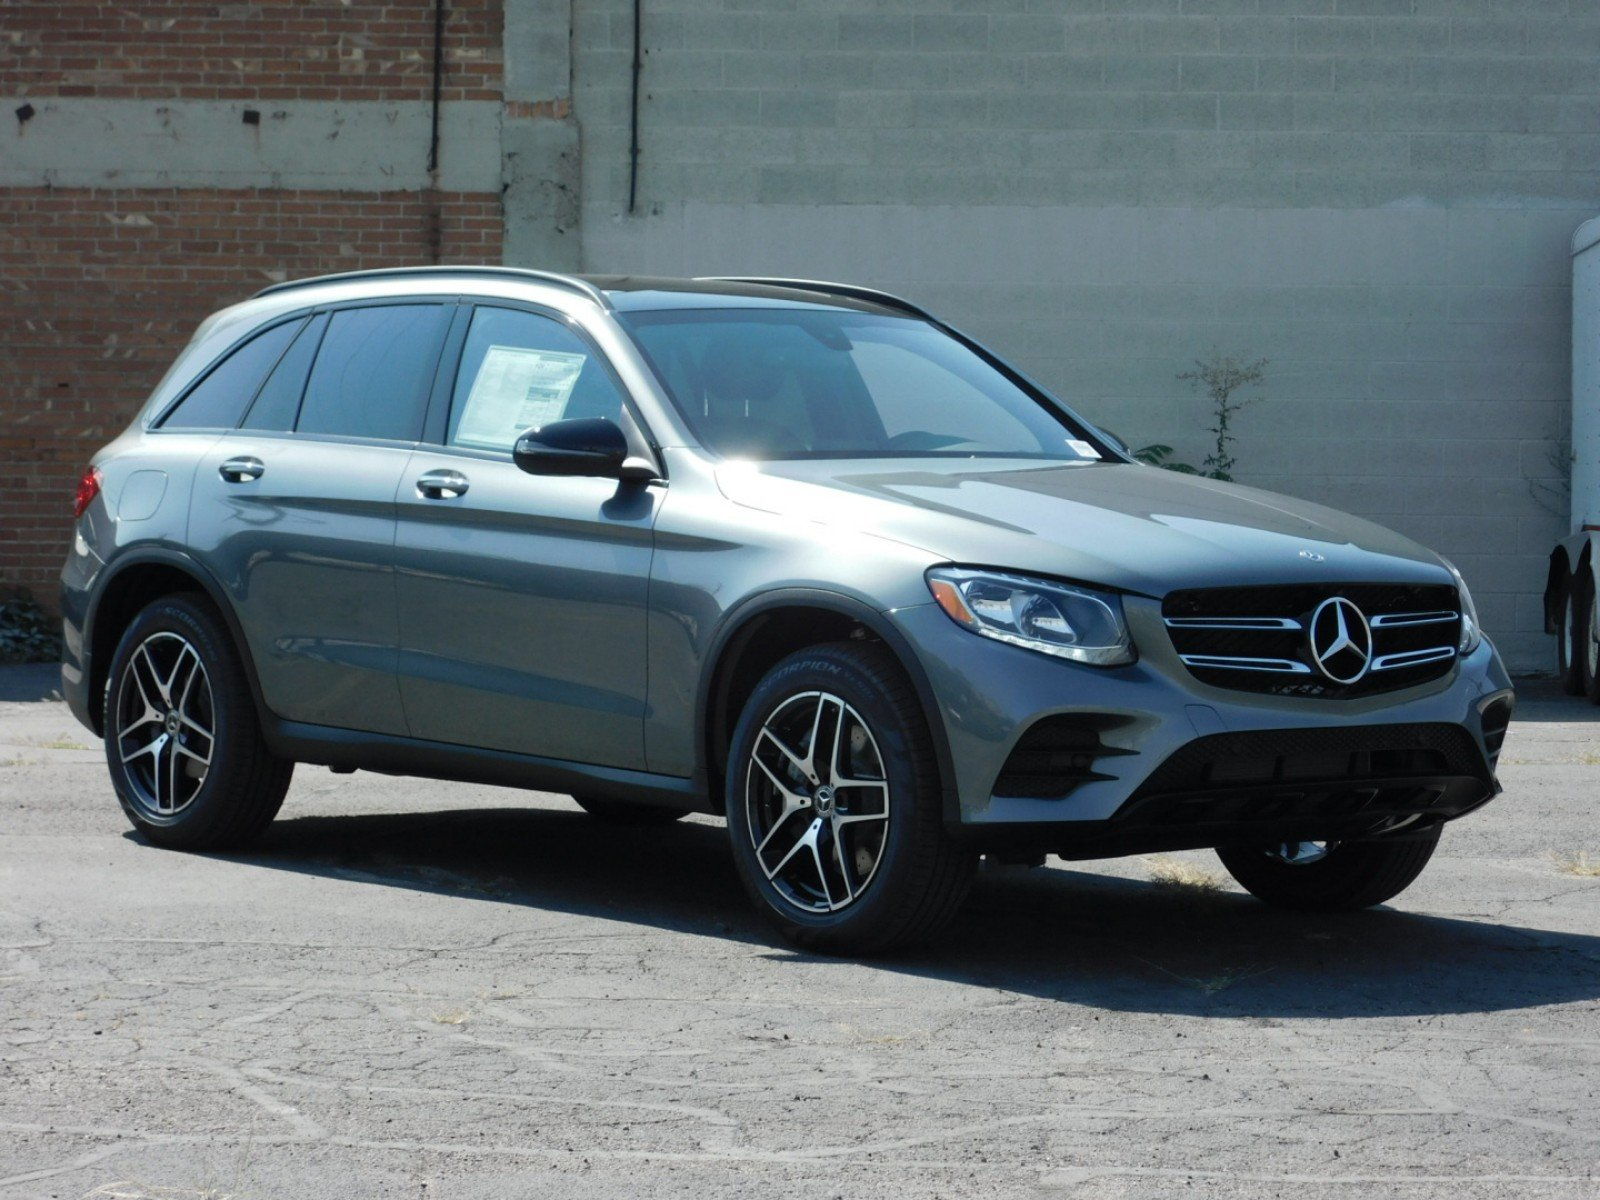 New 2019 Mercedes Benz GLC GLC 300 SUV in Salt Lake City 1M9016